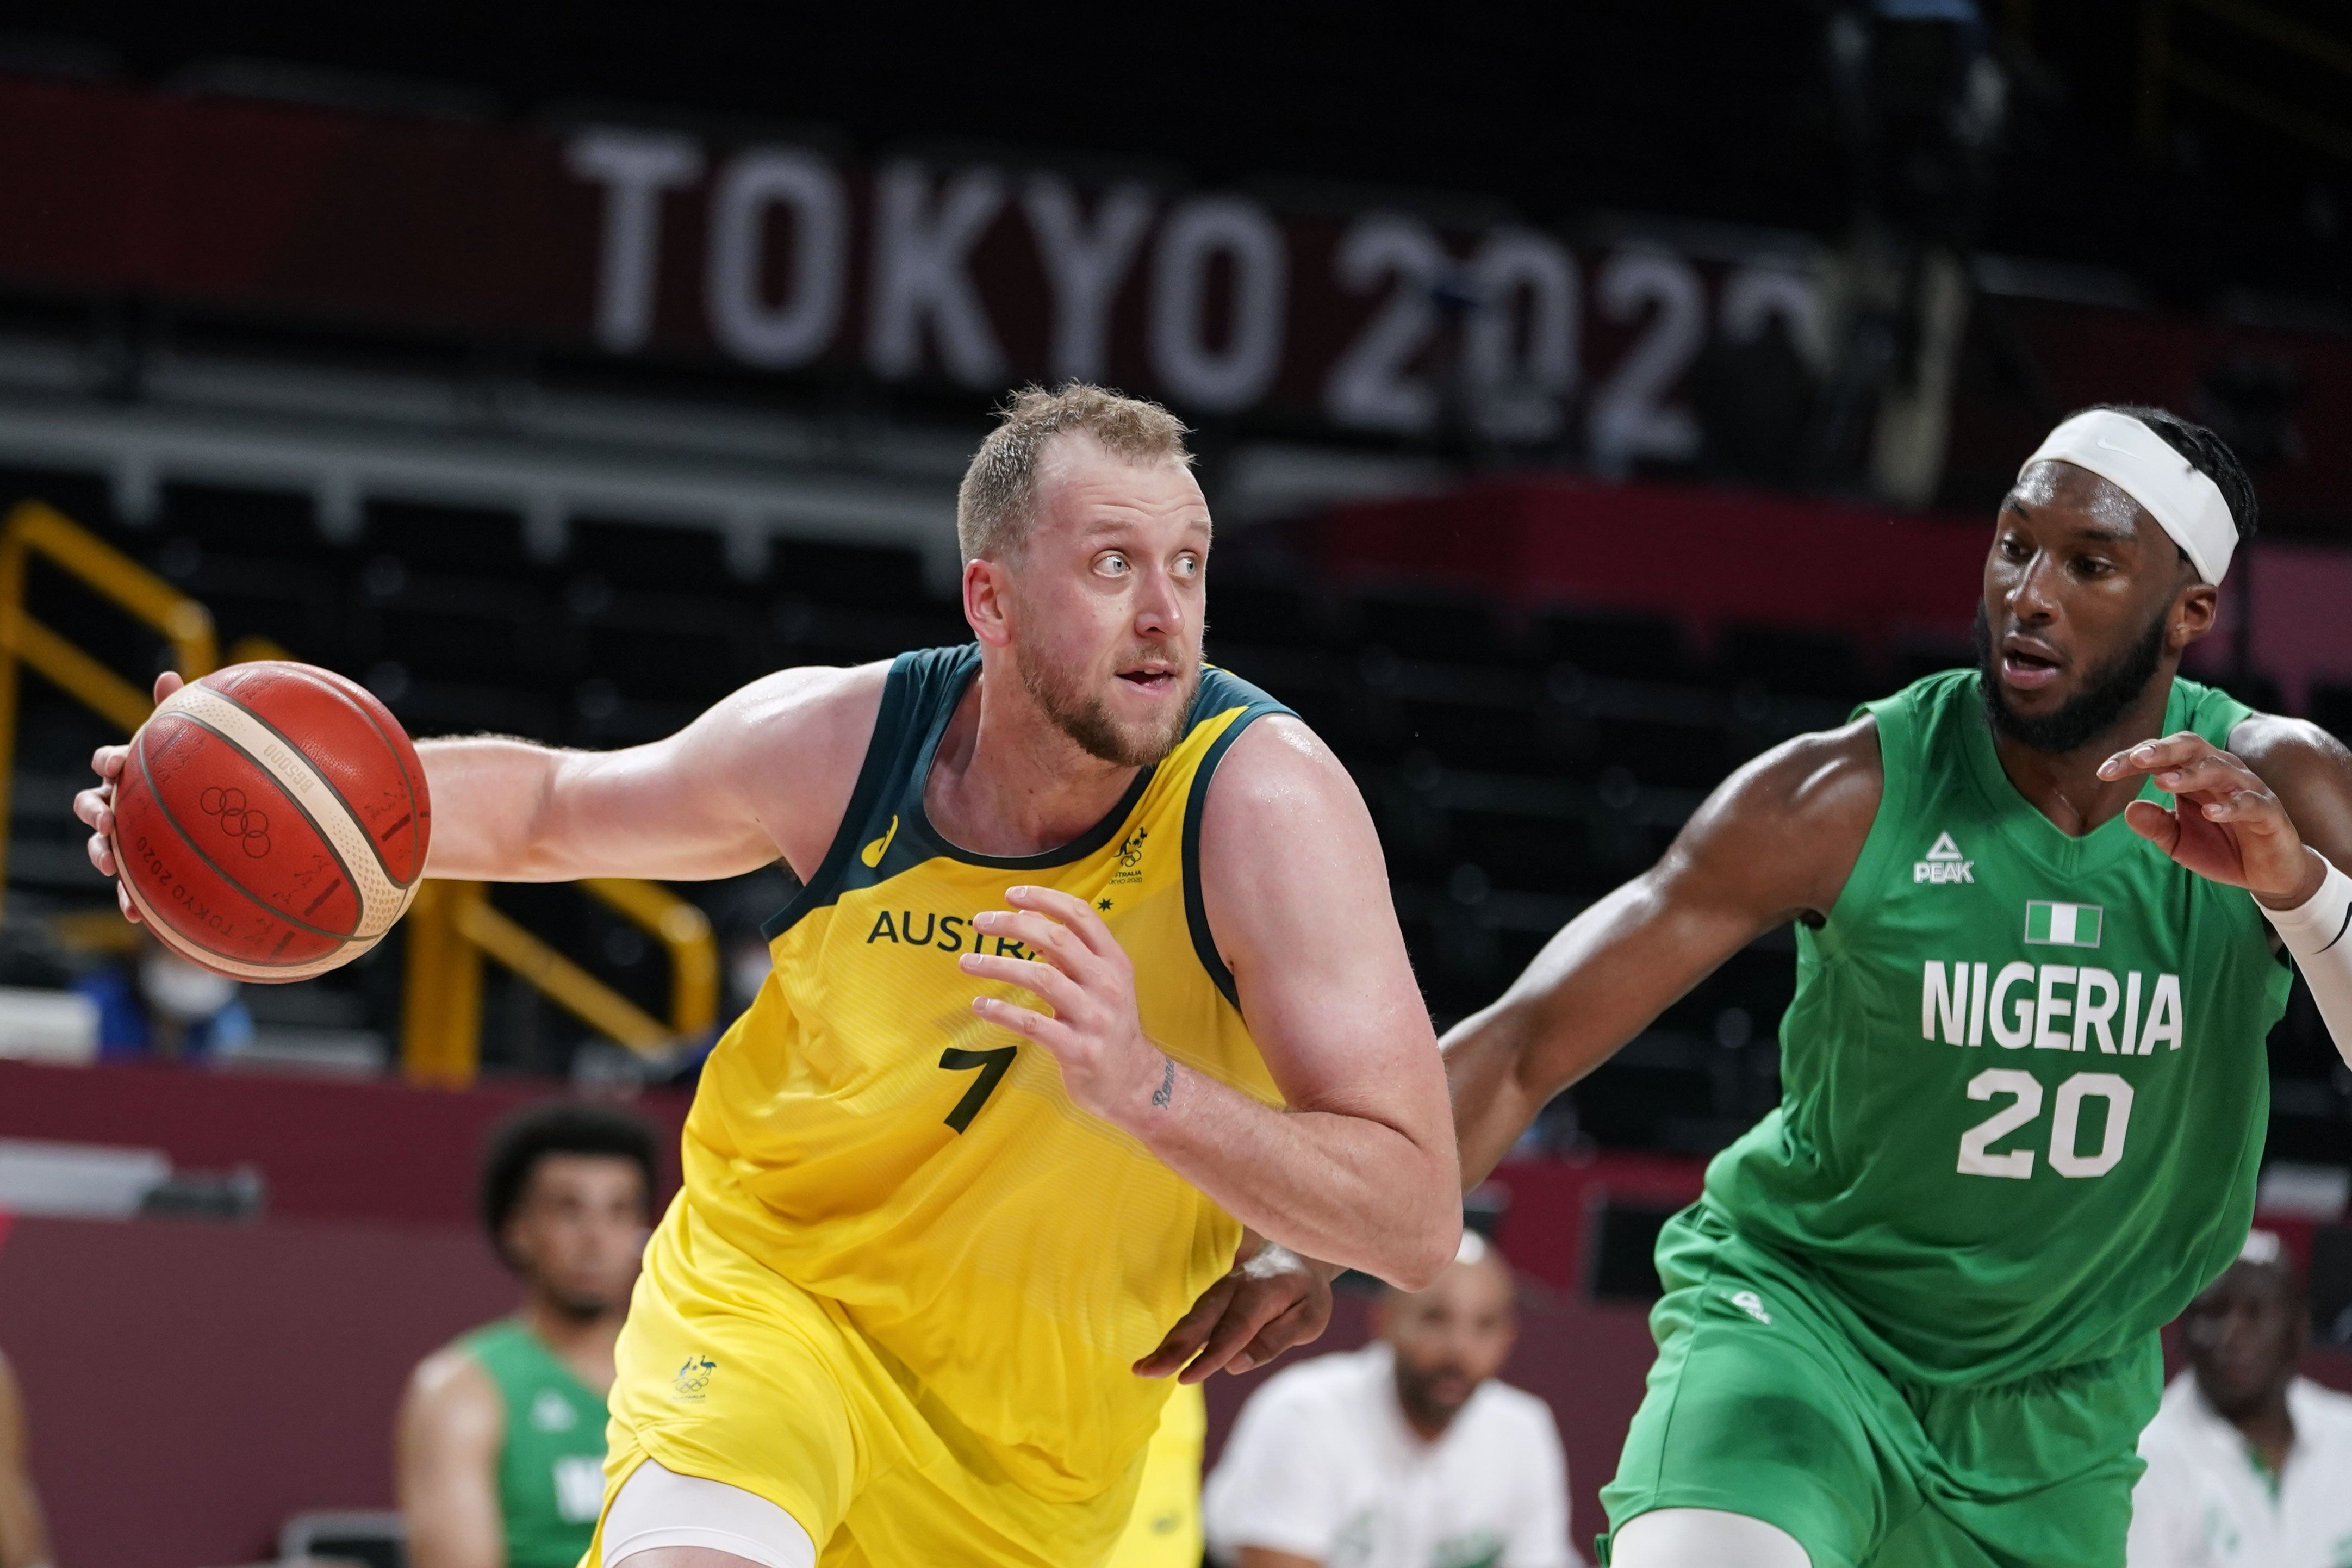 International basketball games from leagues around the globe, olympics, world championships and more. Joe Ingles Scores 11 As Australia Beats Utah Jazz Wing Miye Oni And Nigeria To Open Olympic Play